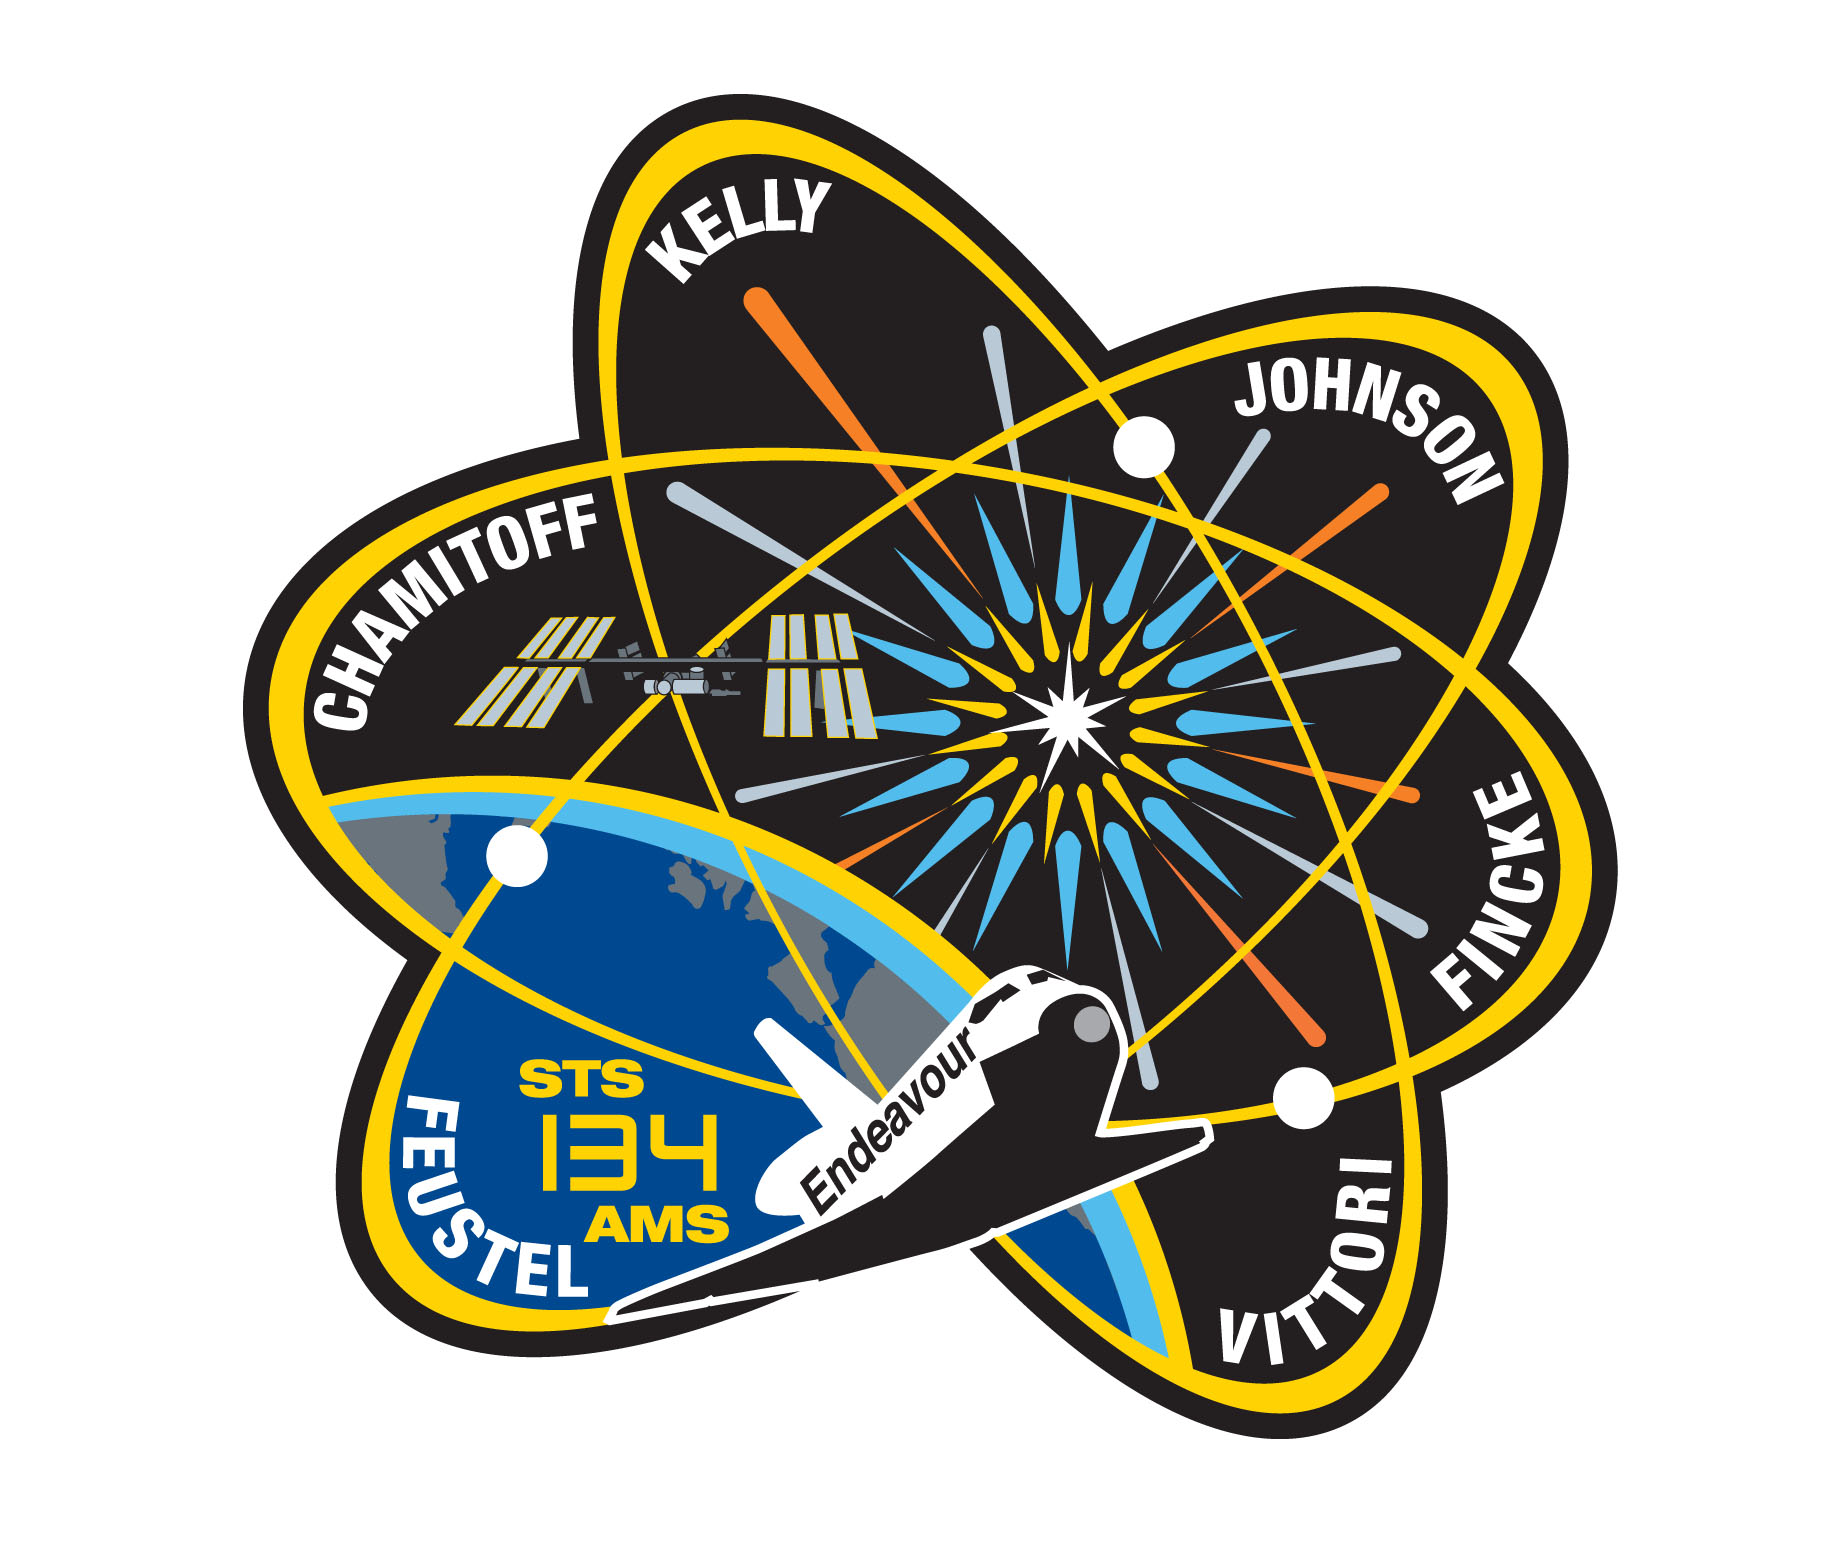 Mission Patches On Mission 4 To The International Space: STS-134 / Endeavour Mission Patch